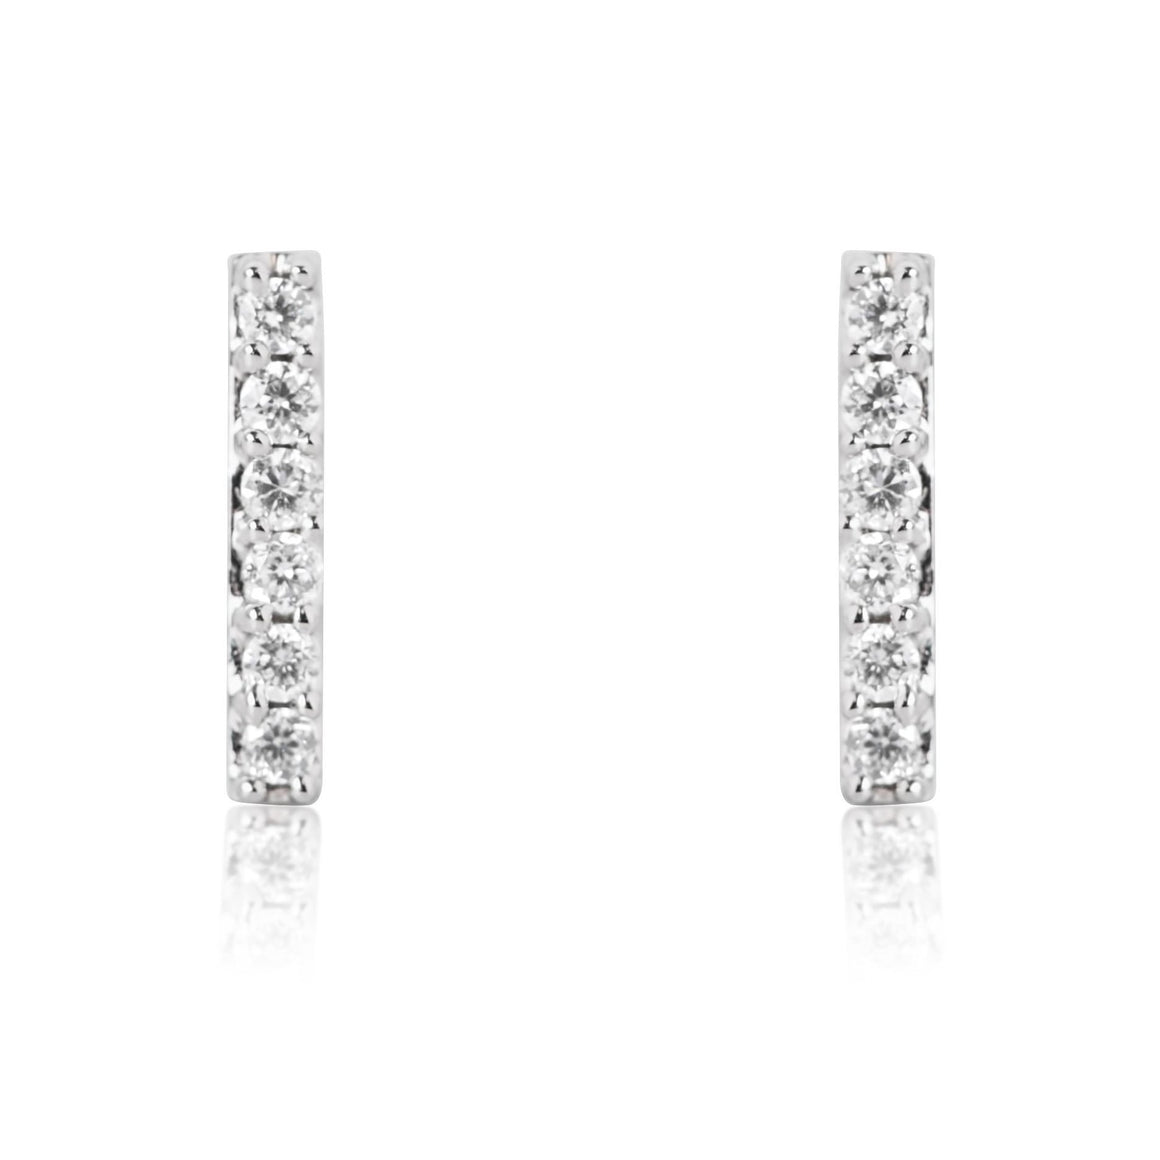 DIAMOND BAR EARRINGS IN WHITE, YELLOW OR ROSE GOLD